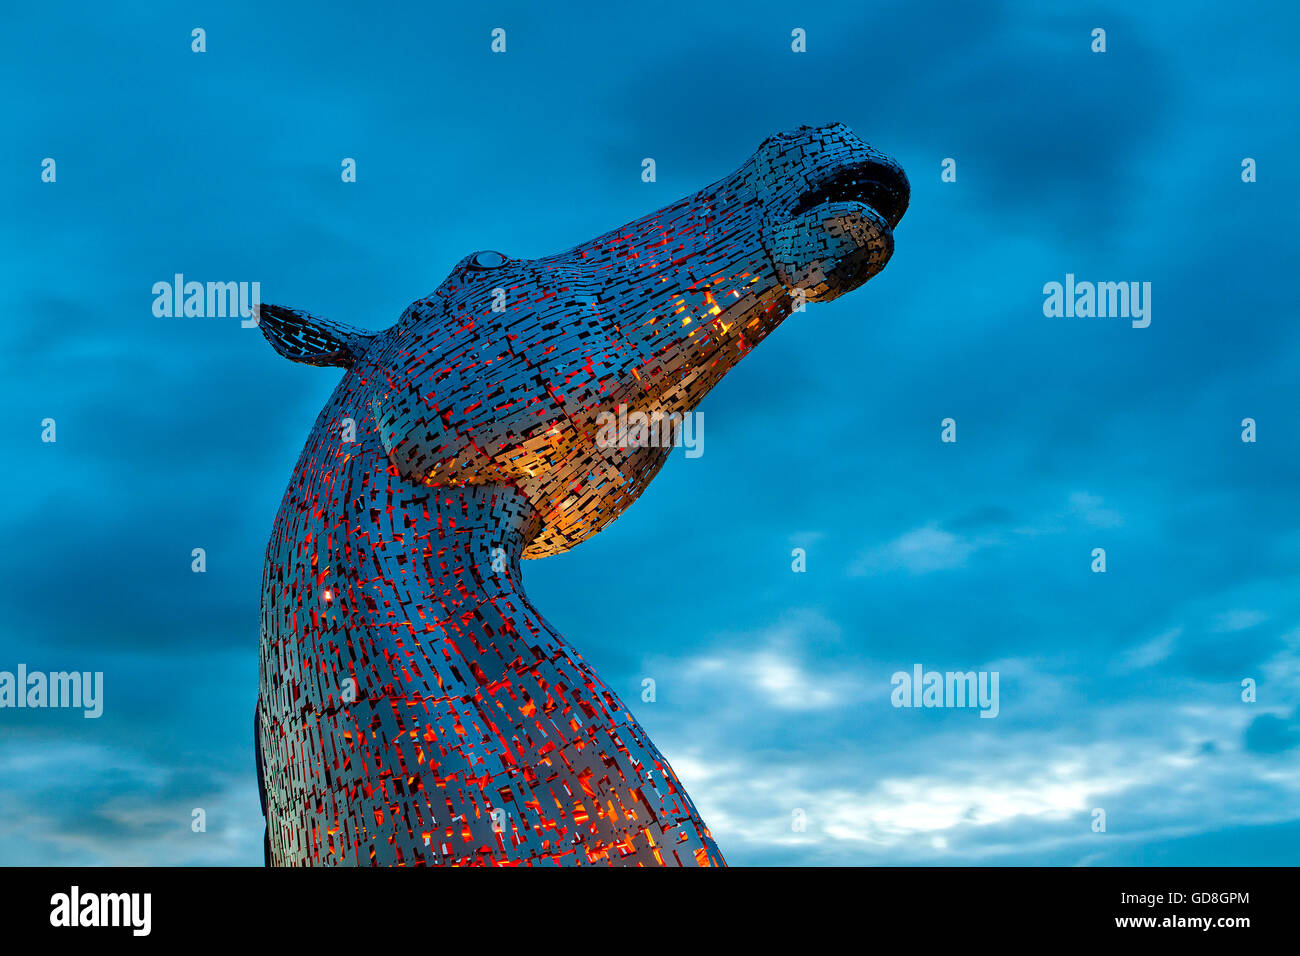 Stormy Kelpie. A night shot of the amazing Kelpie designed by Andy Scott with a dramatic summer sky. - Stock Image